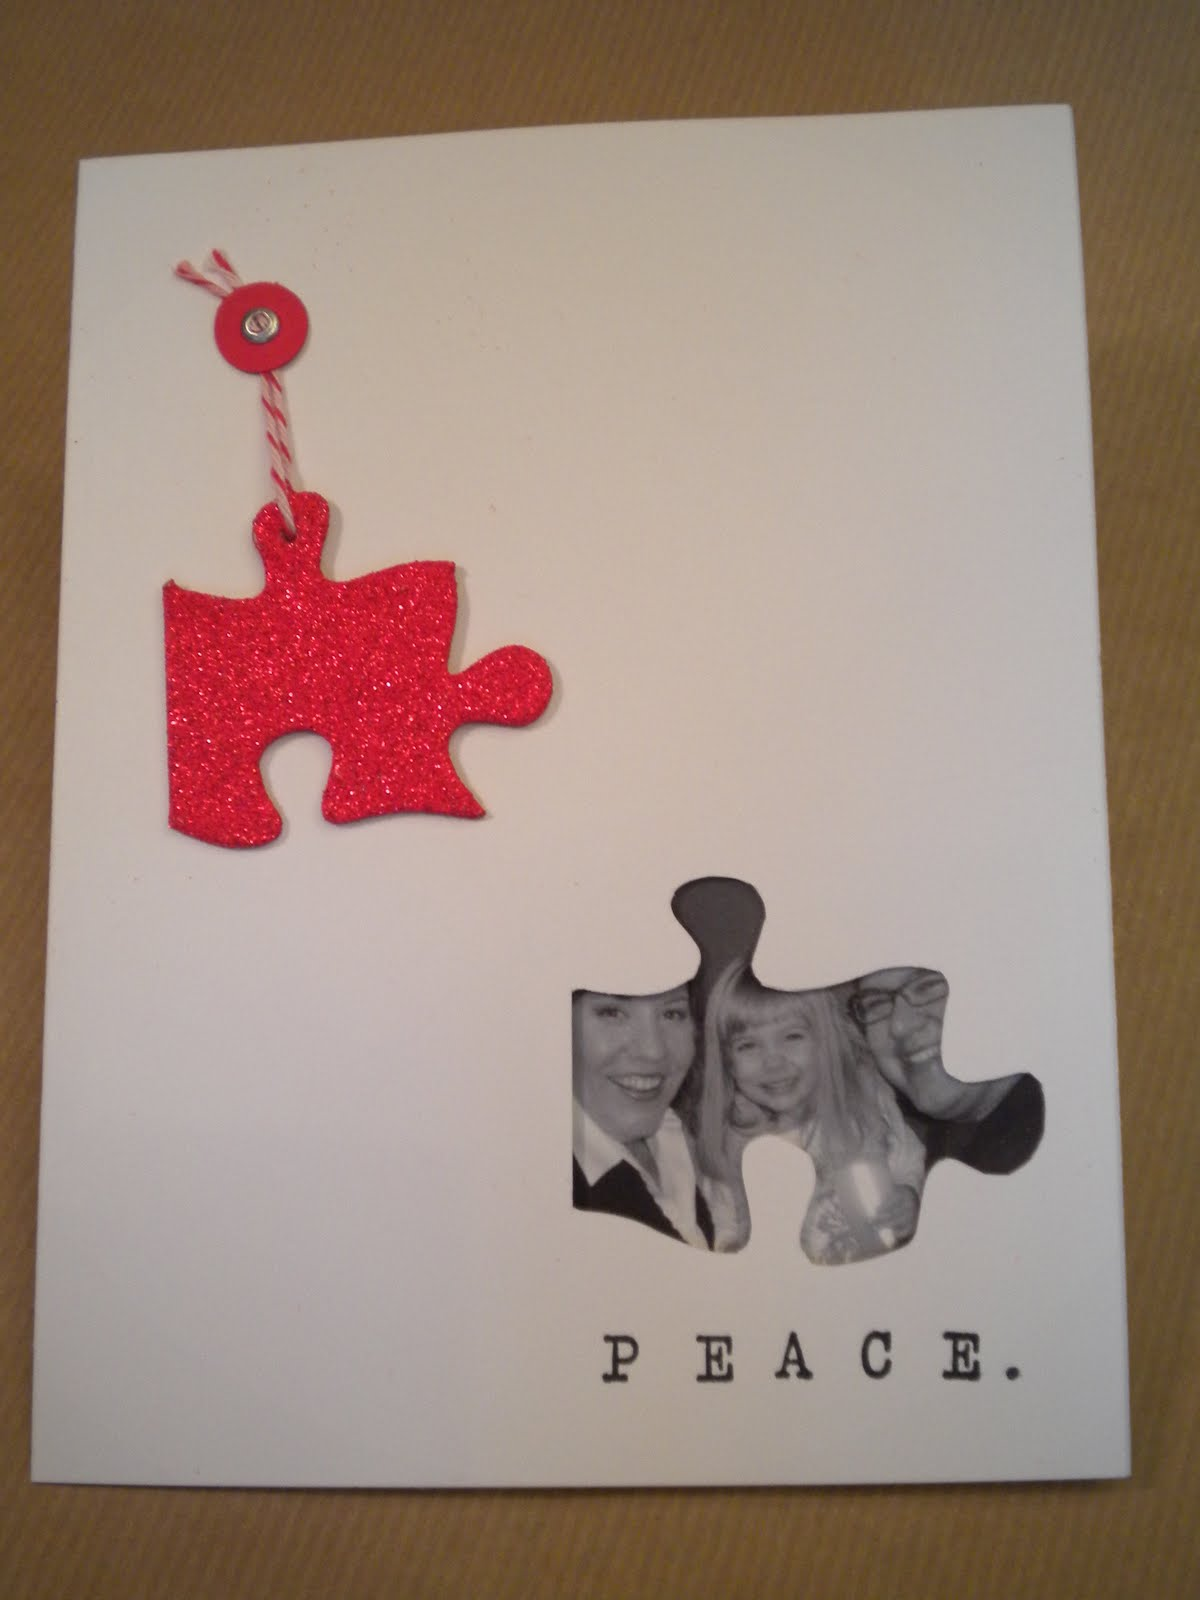 yet another powers christmas card as you can see we used a play on words with a peace theme see the puzzle piece enjoy